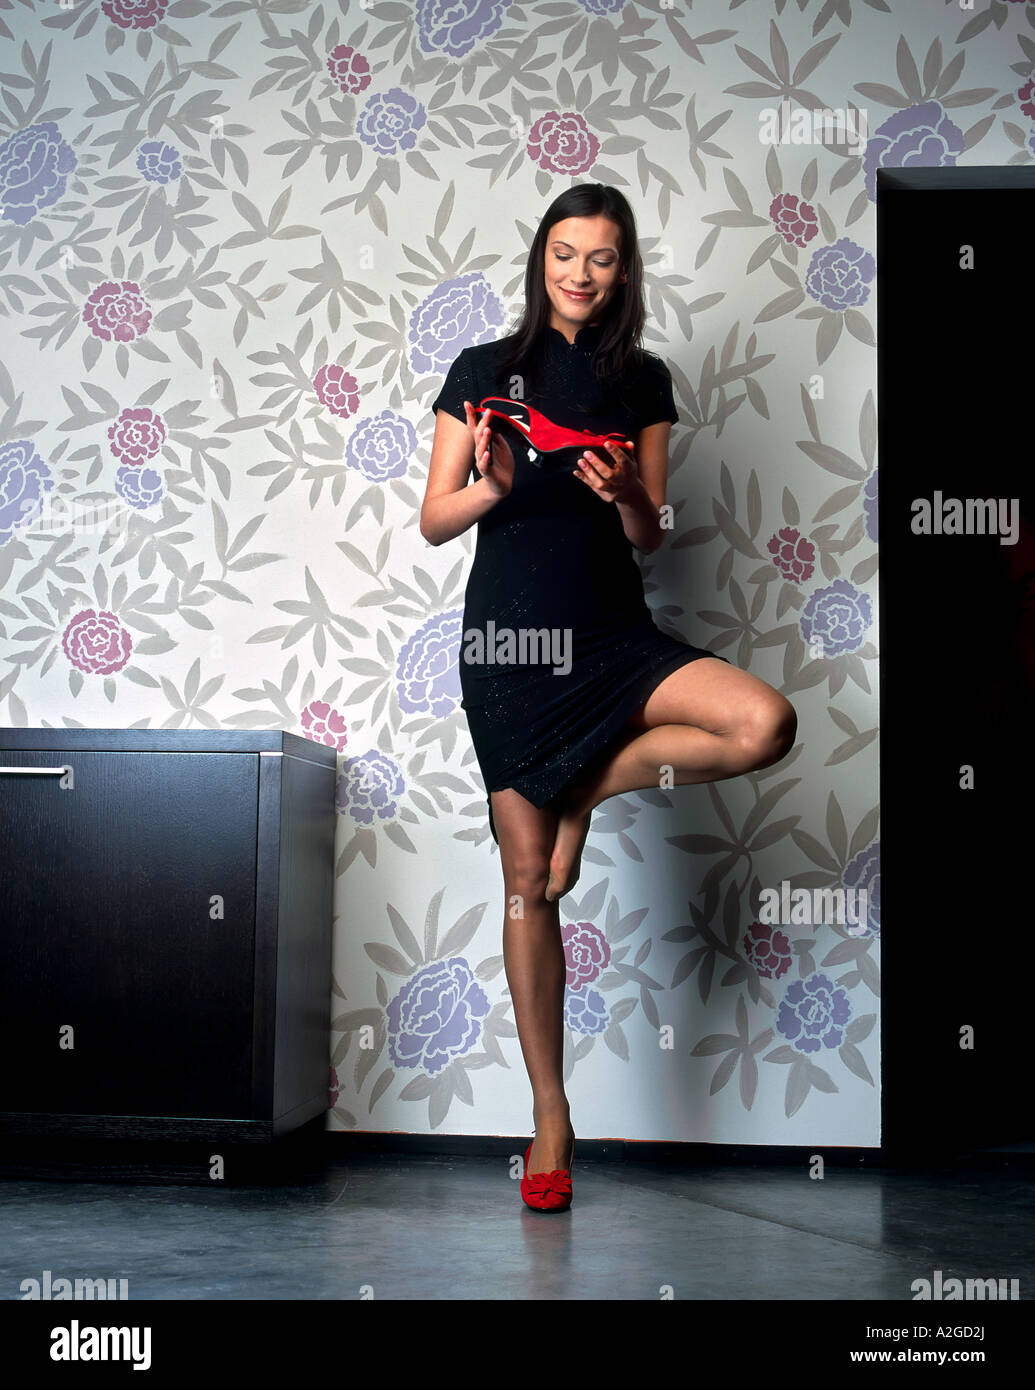 1216452 indoor flat room young woman 25 30 brunette long hair black dress put on red shoe shoes hold look stand - Stock Image